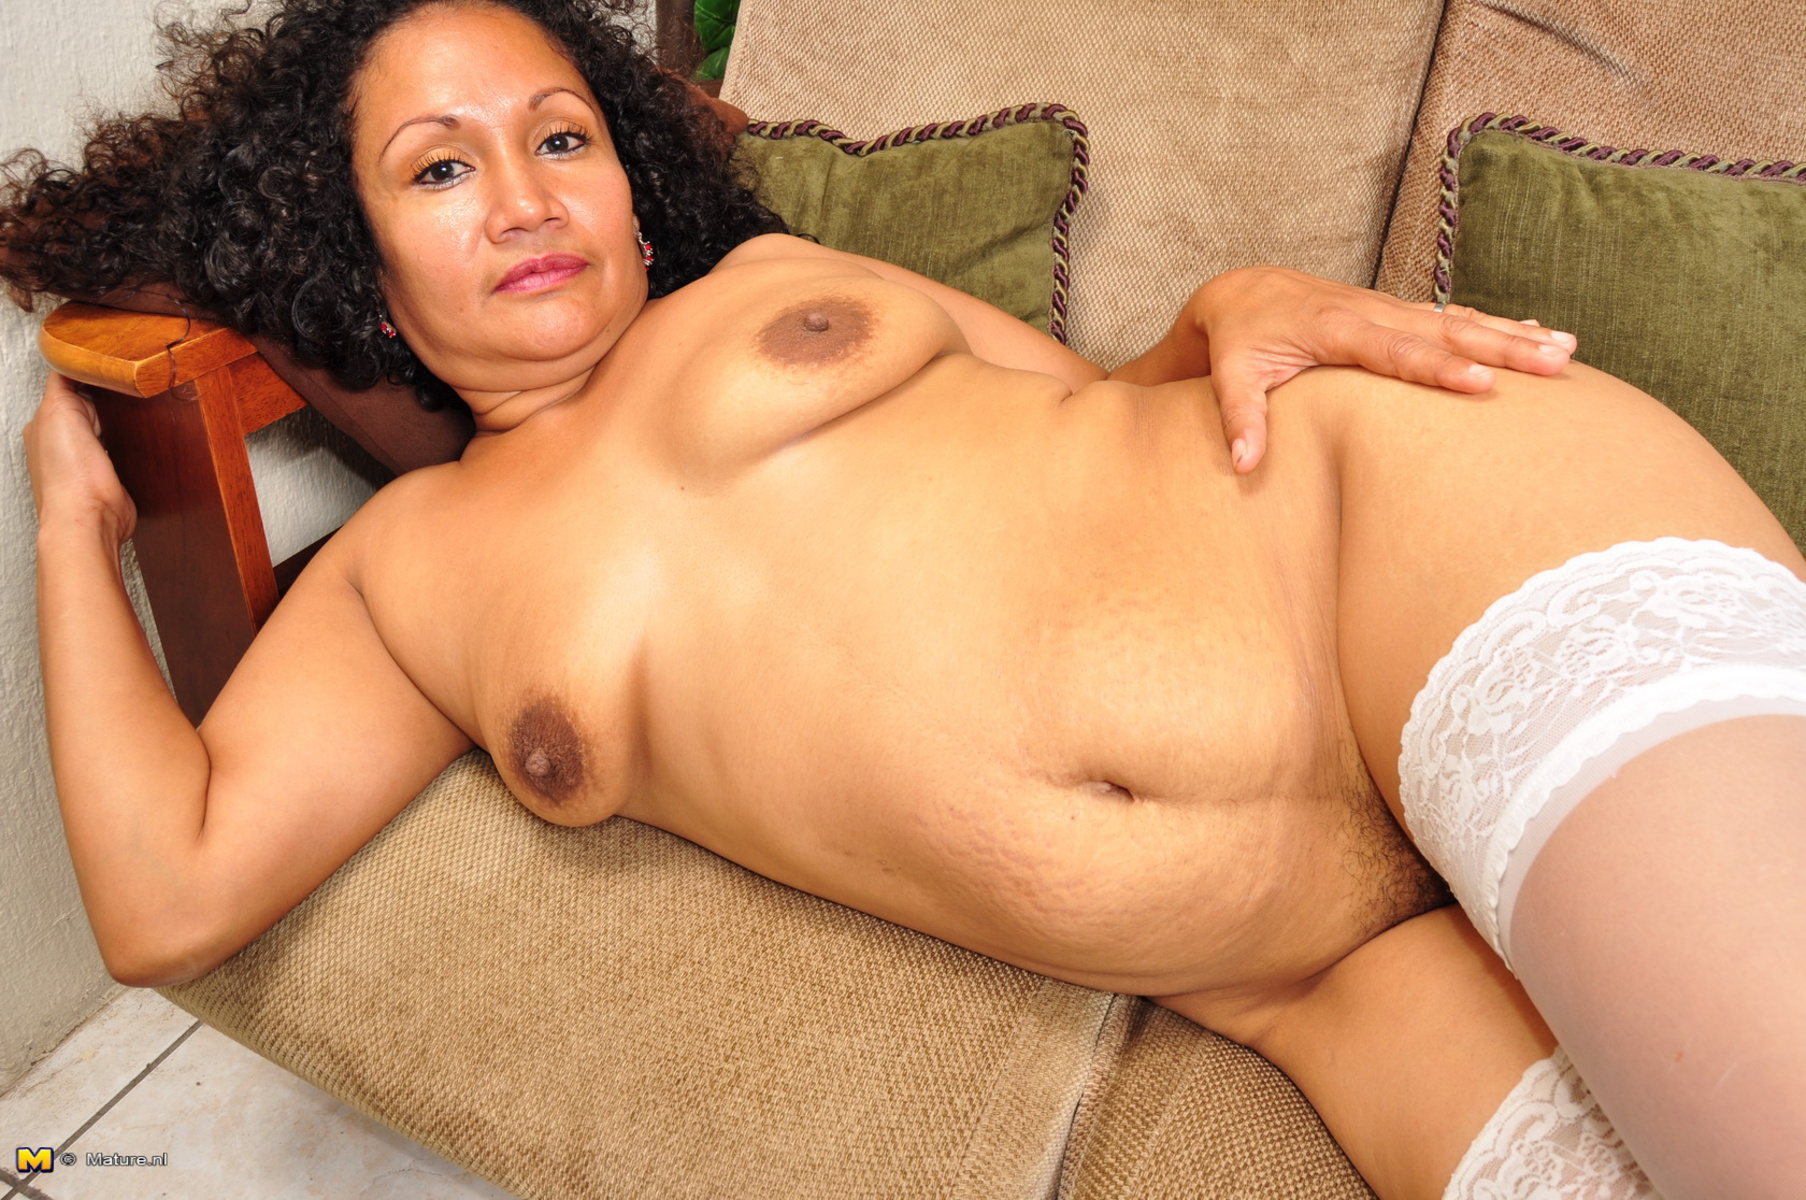 Tube old lady young boy flaccid dick gay 5